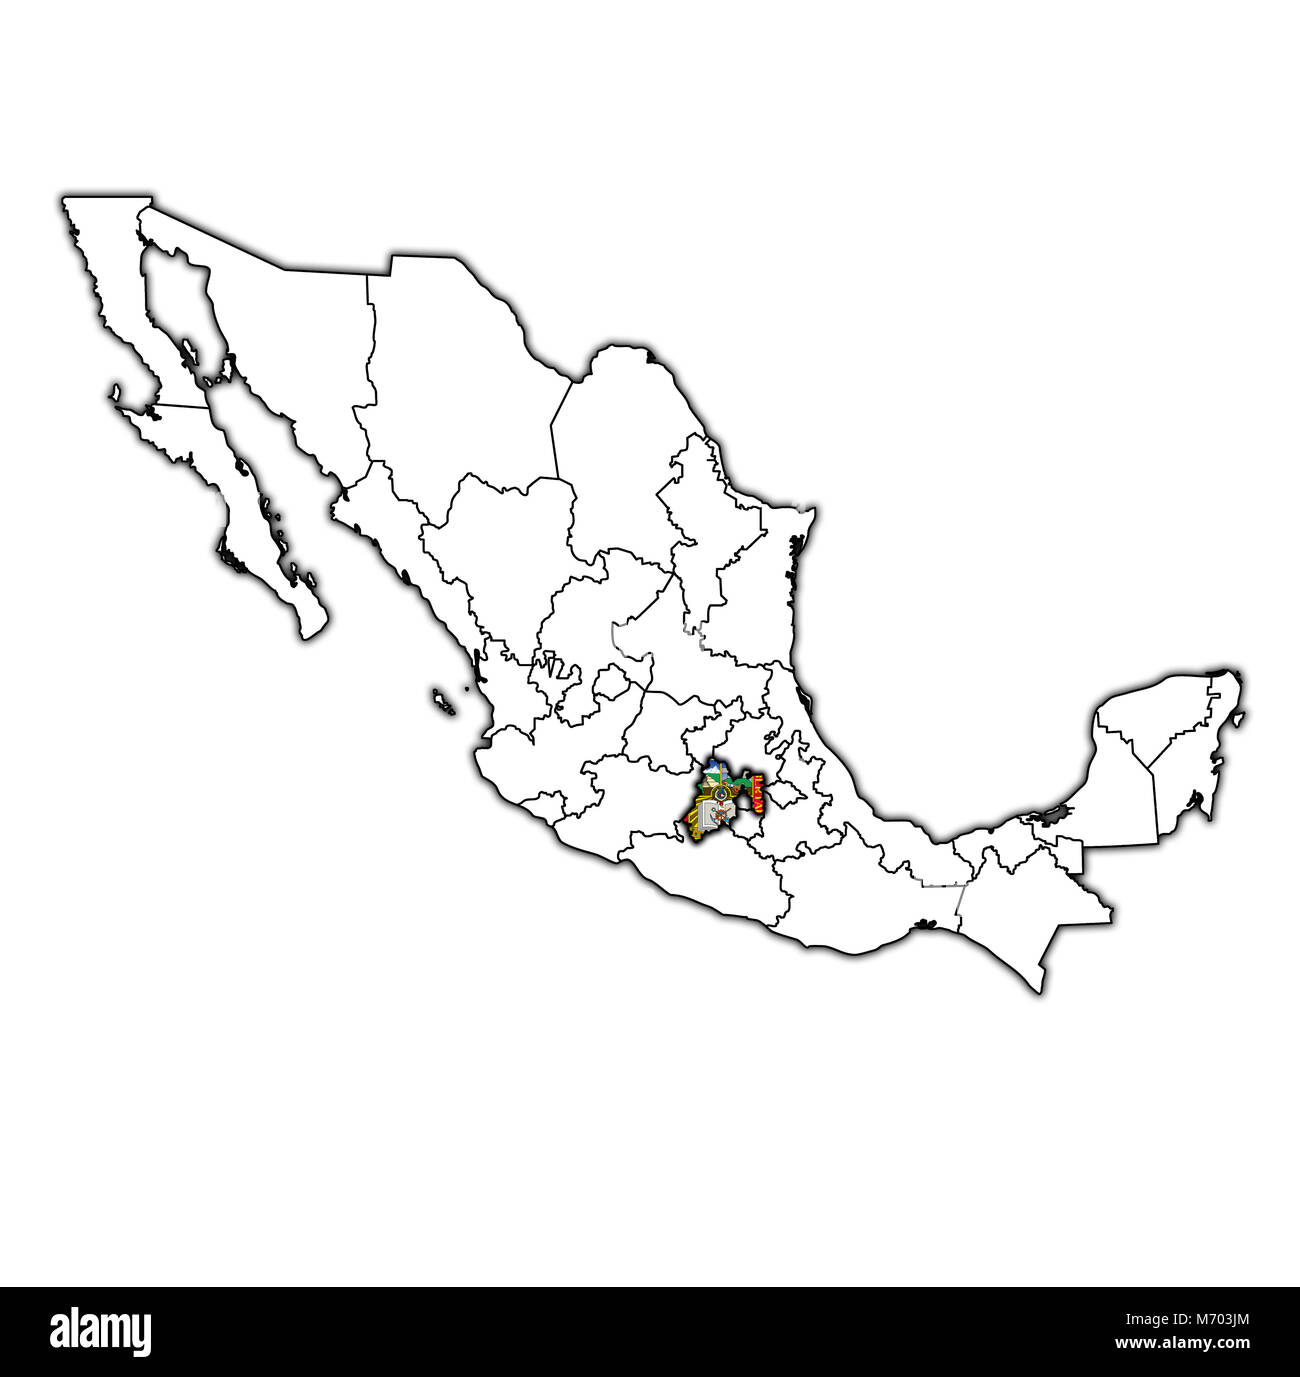 emblem of Mexico state on map with administrative divisions and borders of Mexico - Stock Image